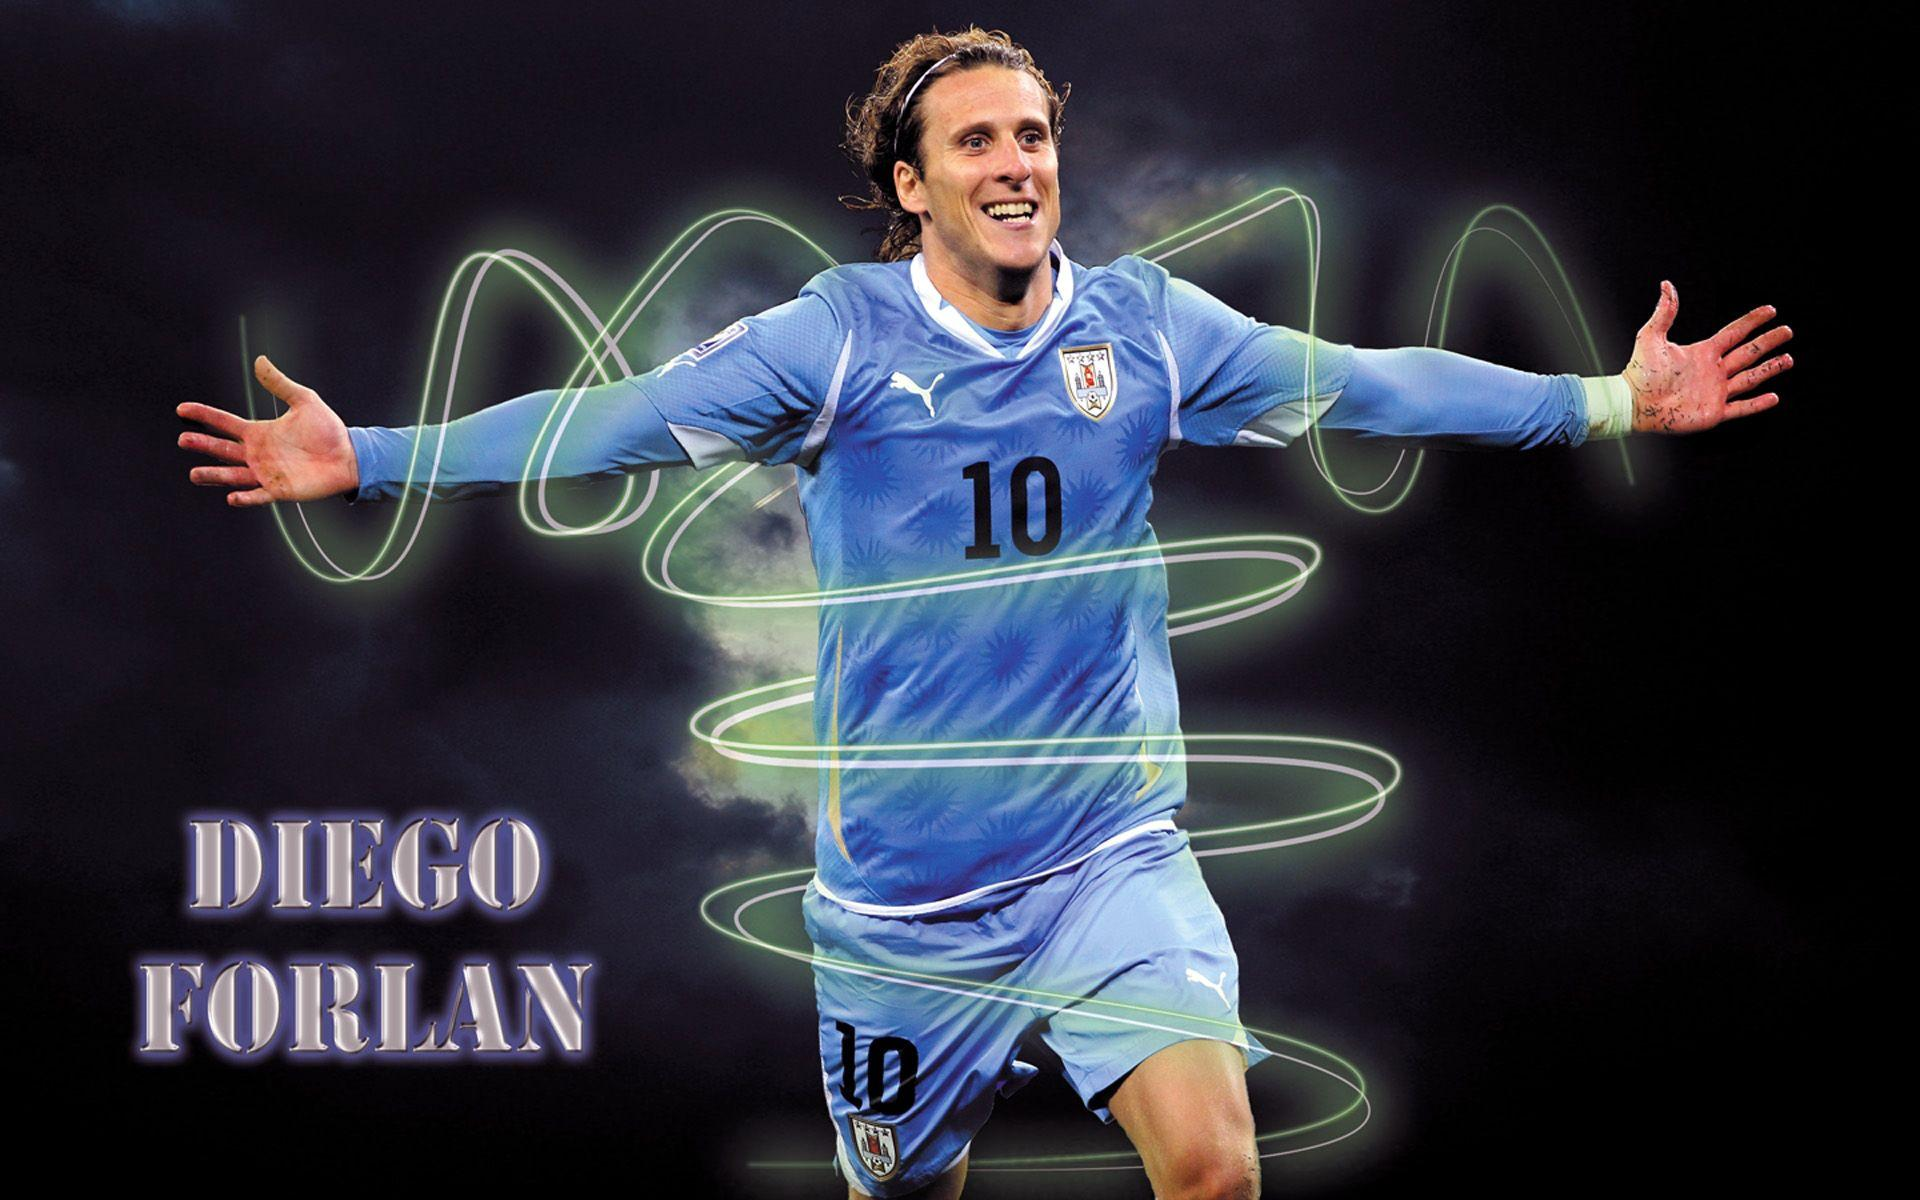 Diego Forlán Wallpapers - Wallpaper Cave